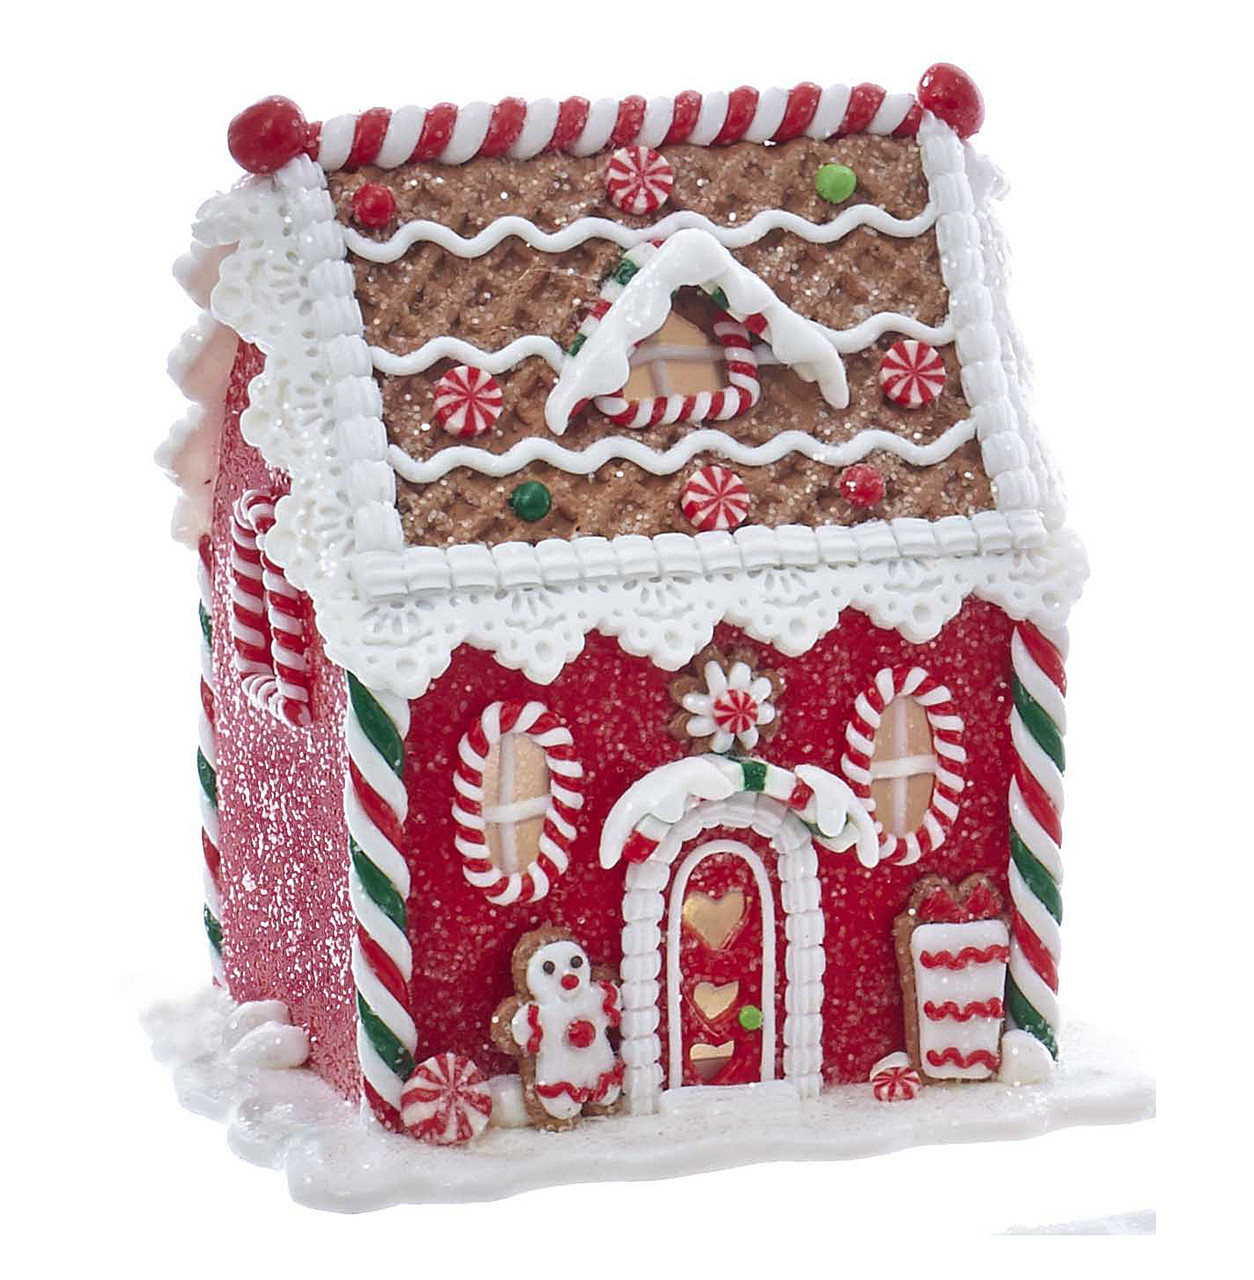 Red Led Lighted Gingerbread House With Frosted Gingerbread Man